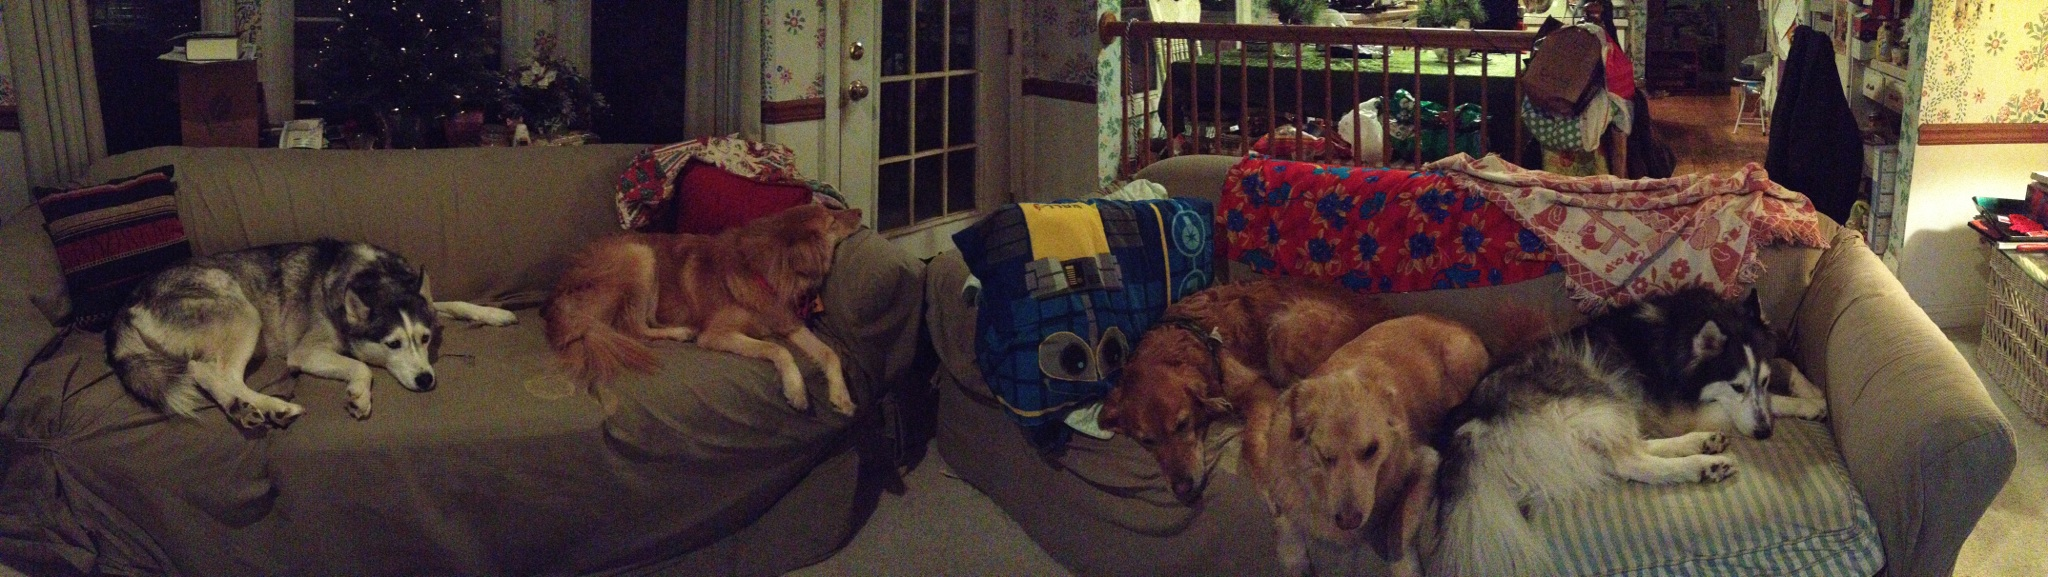 All 5 dogs in a Thanksgiving food coma